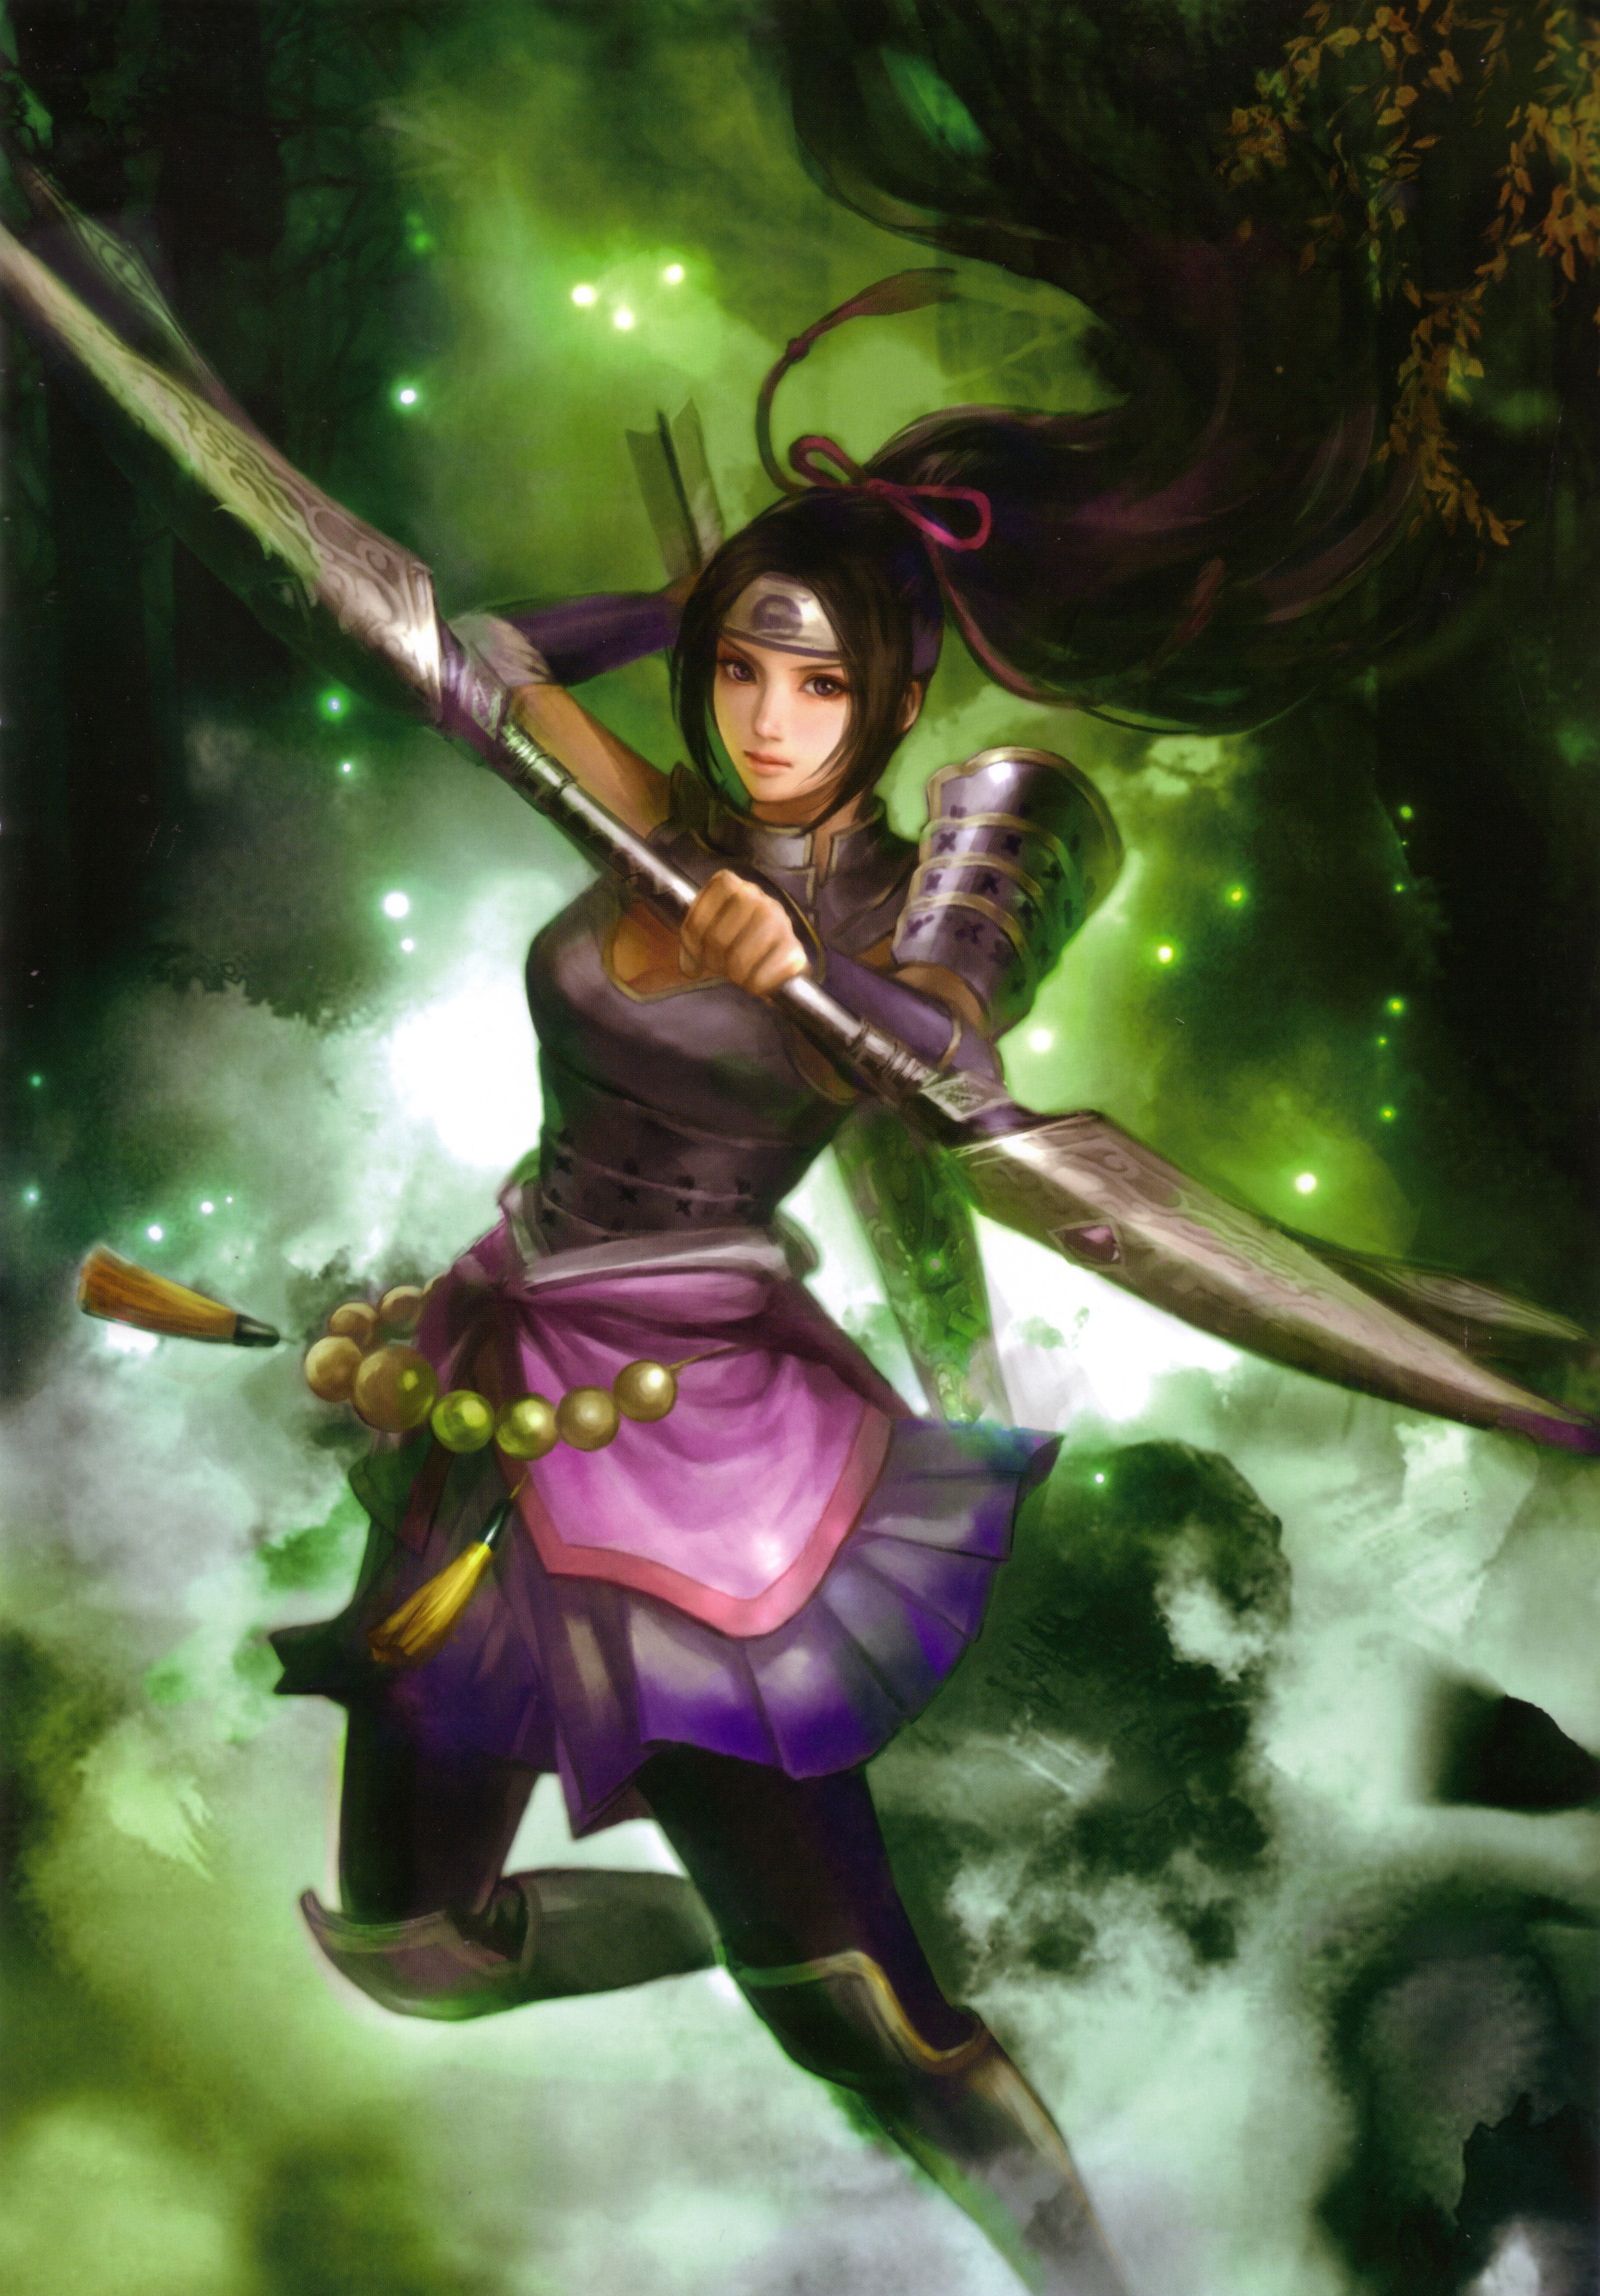 Nude ina from samurai warriors adult image